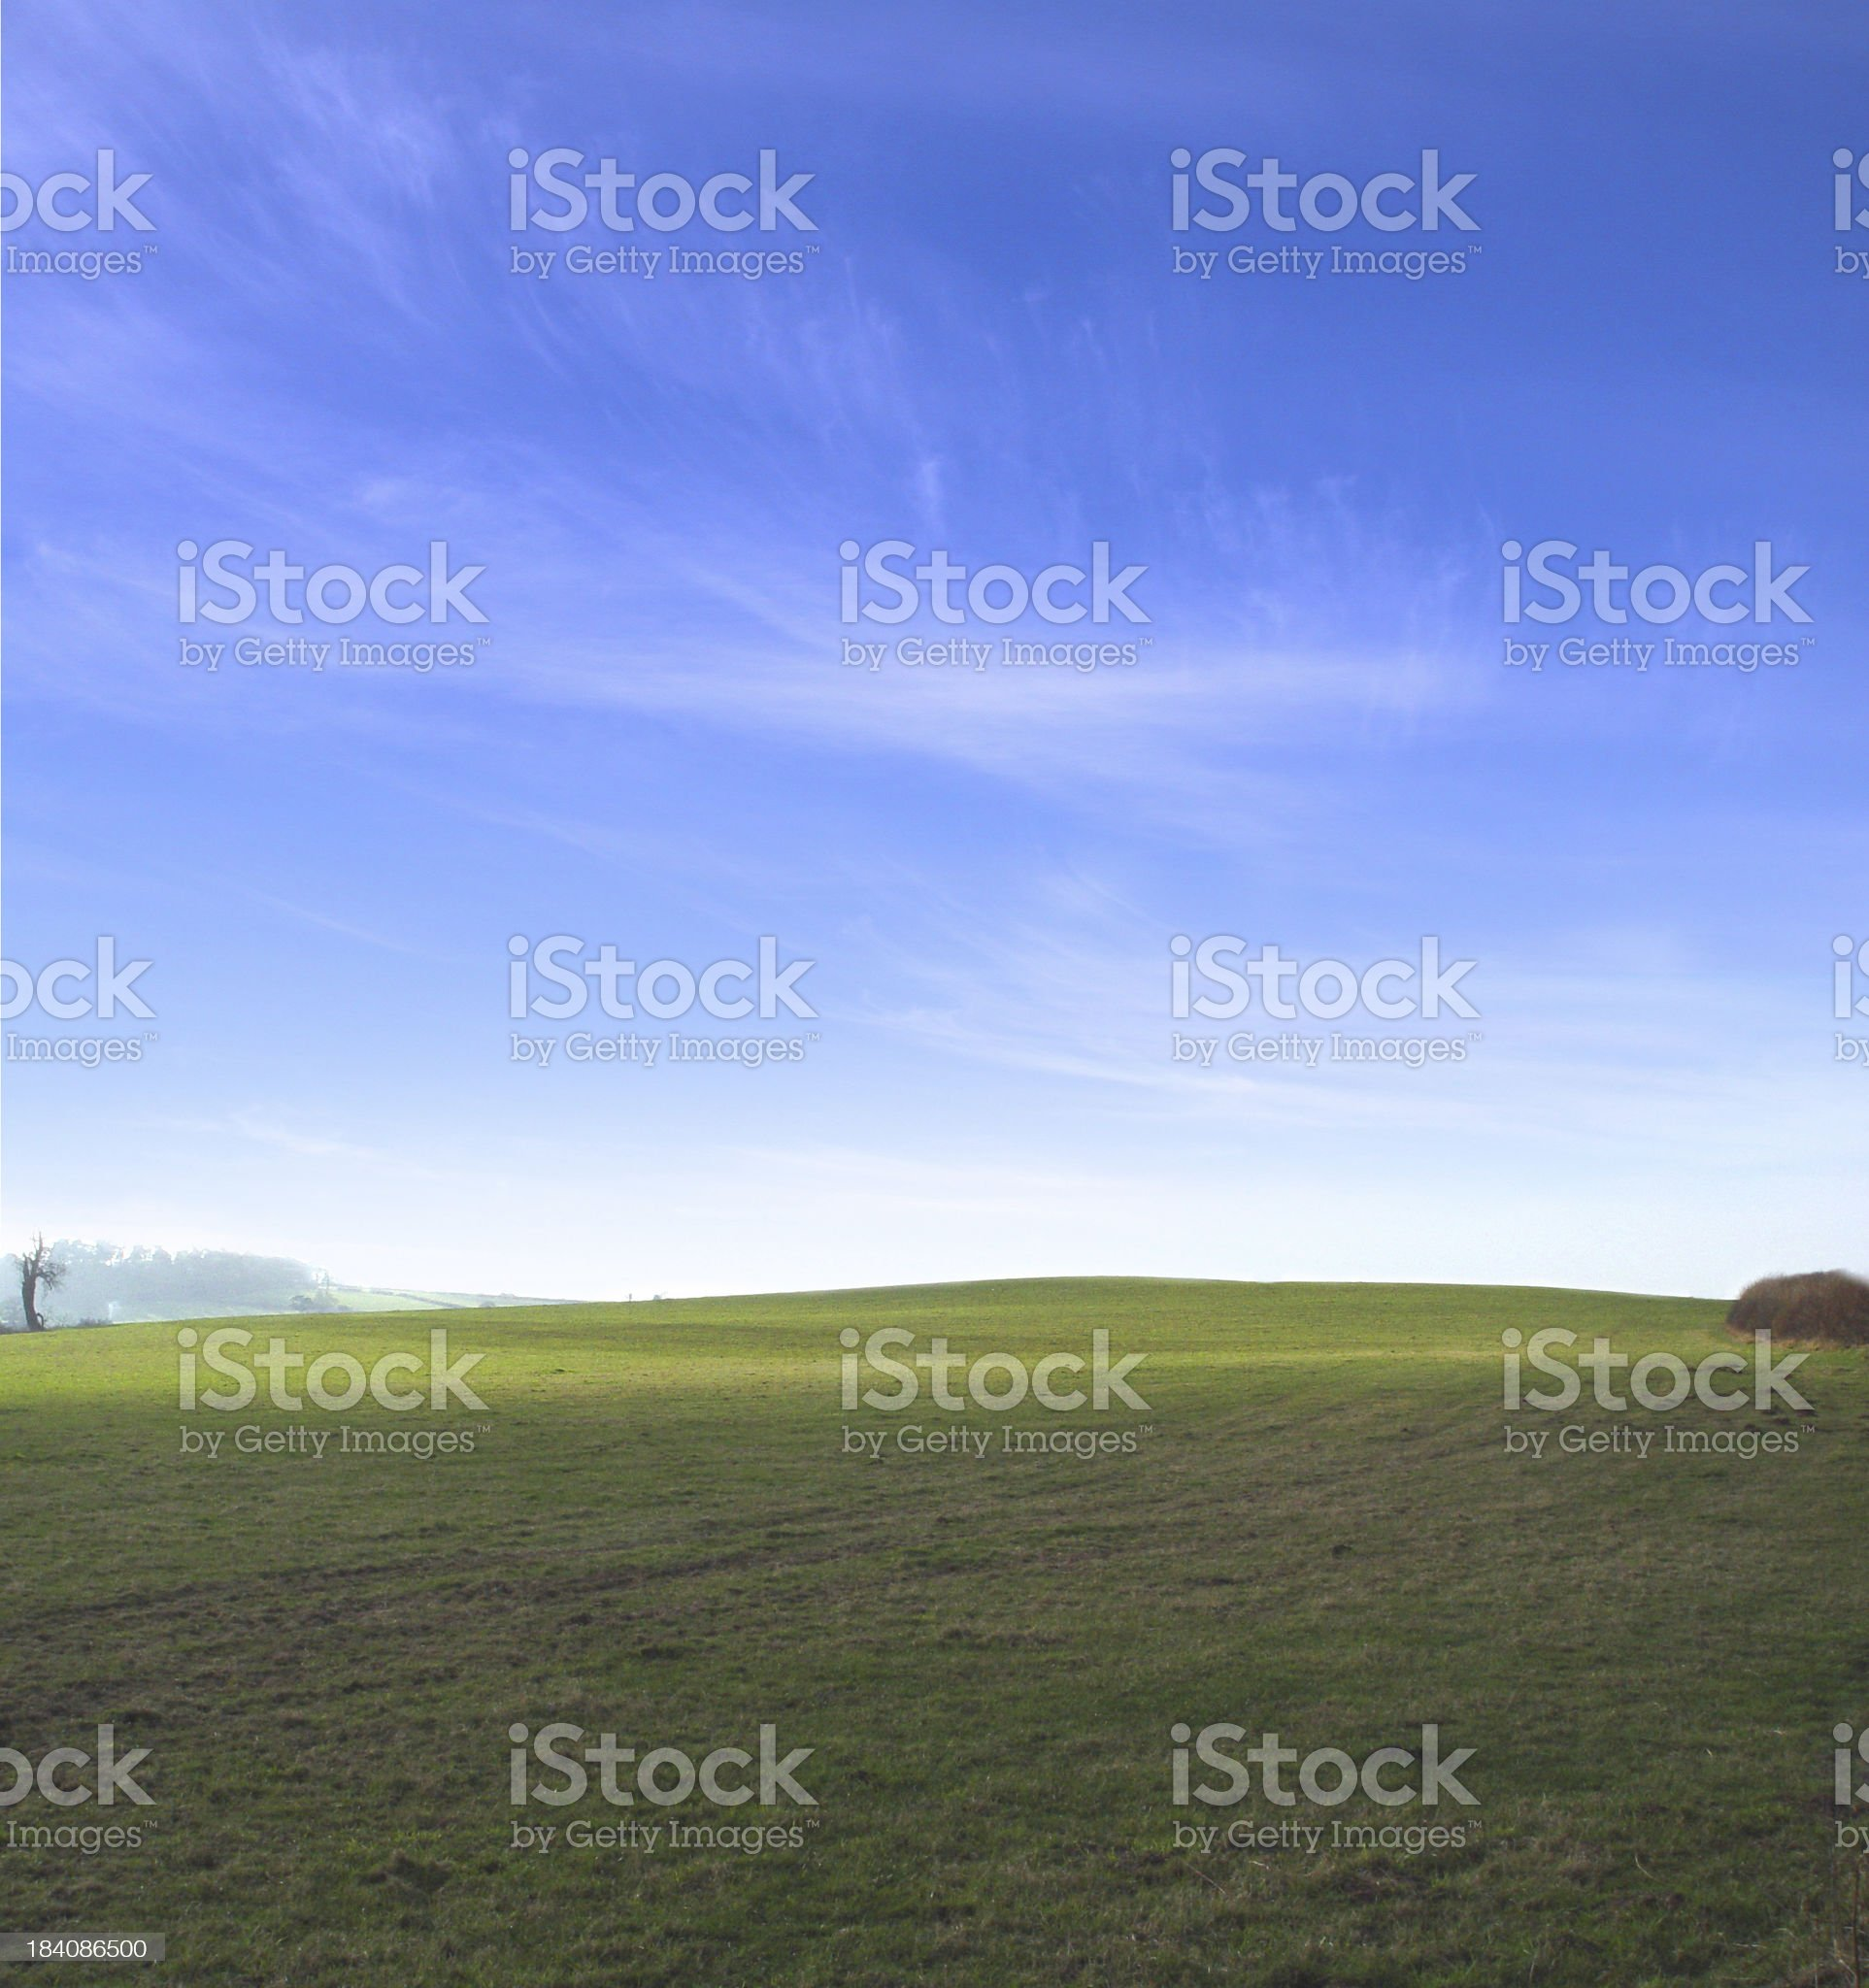 Sky and Fields 4 royalty-free stock photo